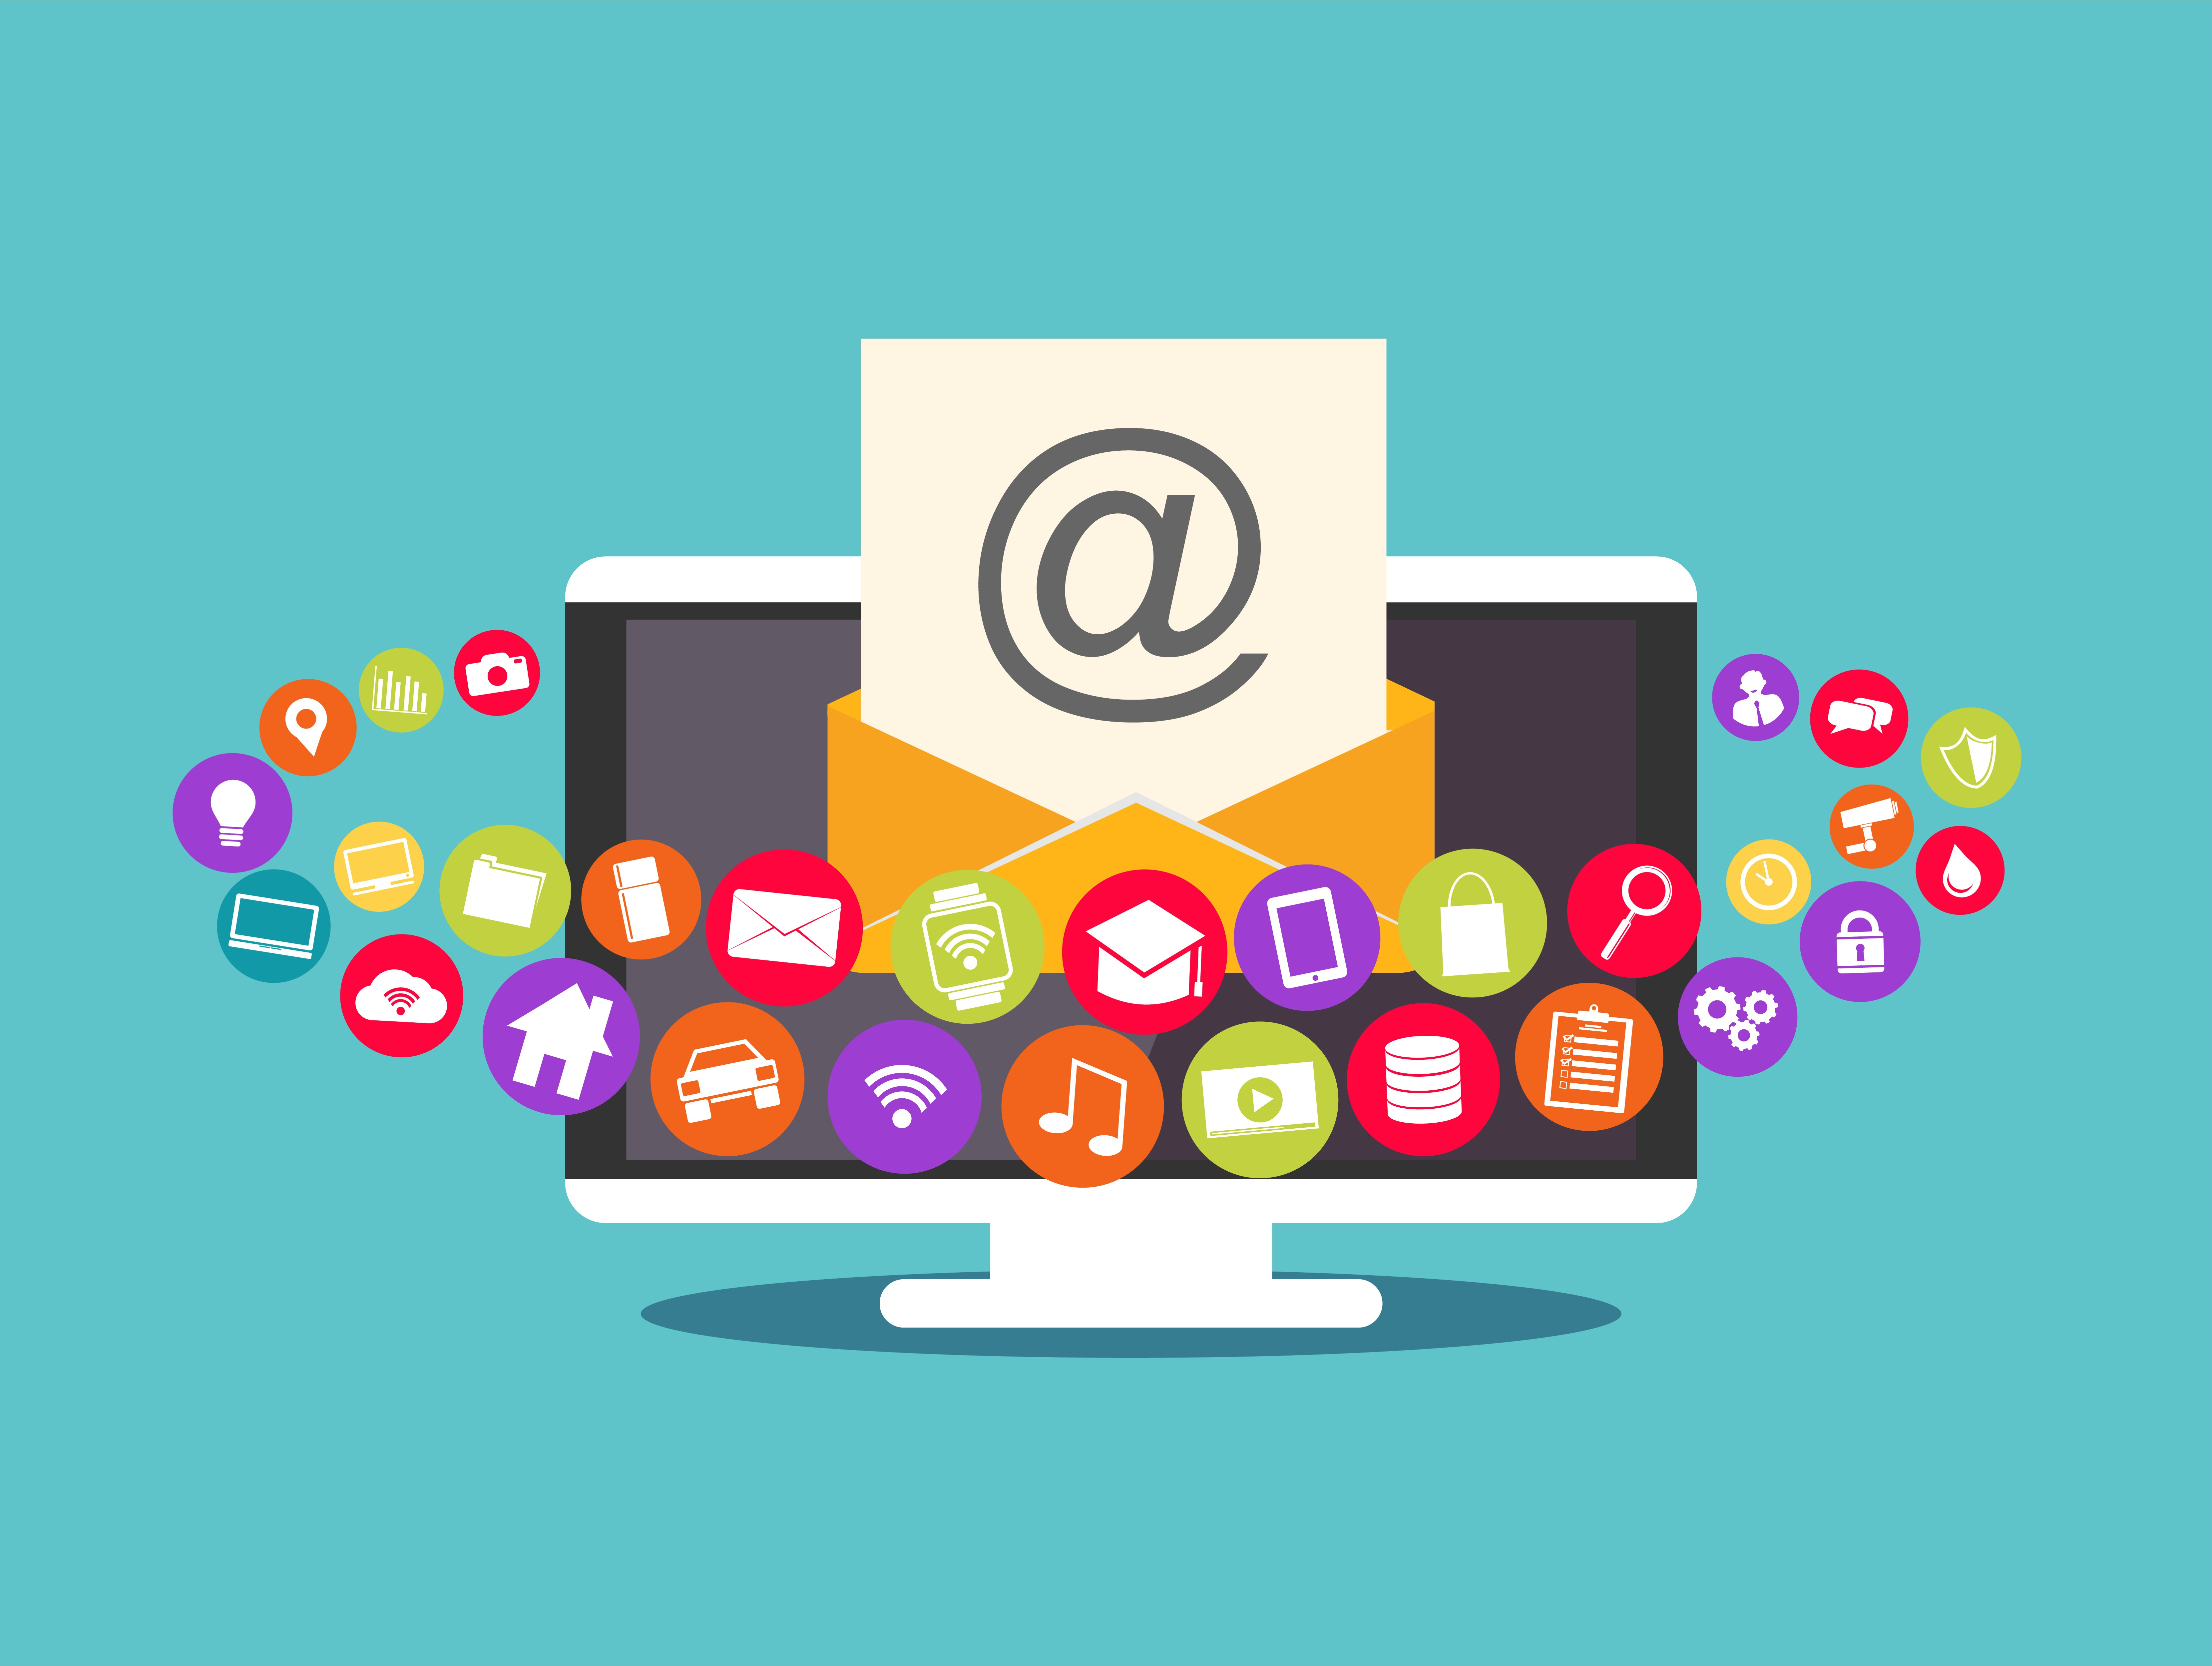 5 Marketing Emails Your Industrial Business Needs to Stand Out